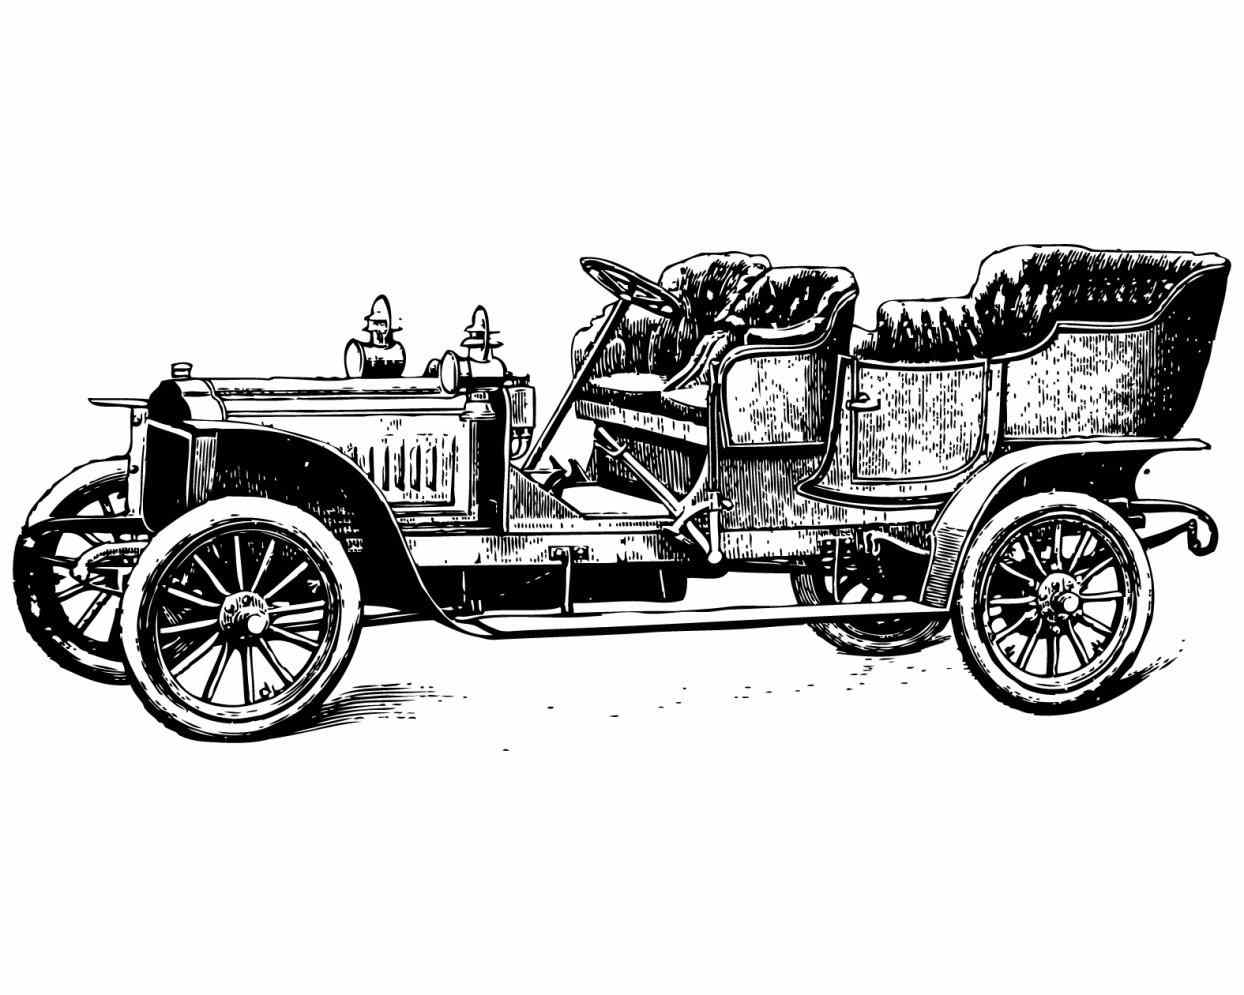 Art Images And Coaches Classic Car Class-Art images and coaches classic car classic vintage cars clipart car pojazdy  on clip art and-0